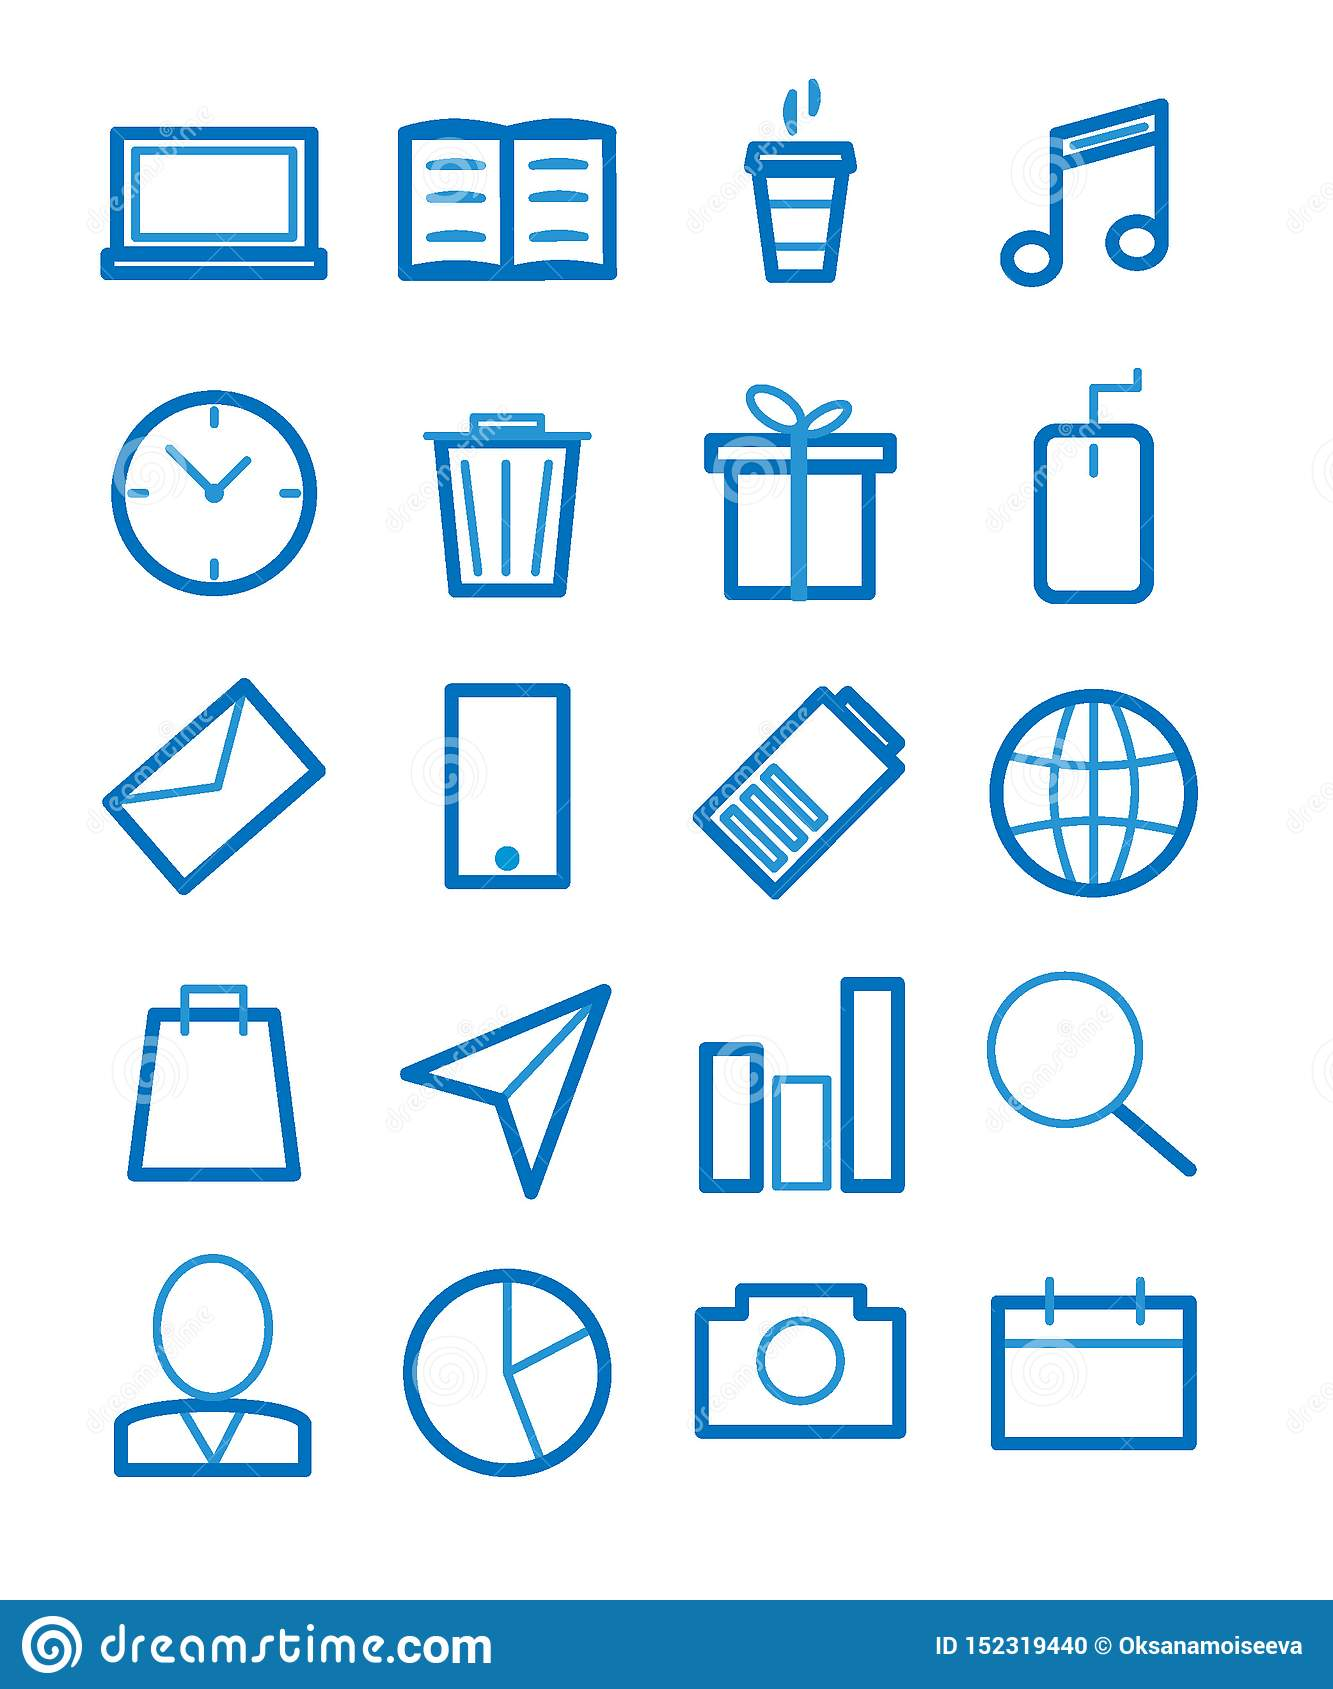 Simple Set of Related Vector Line Icons